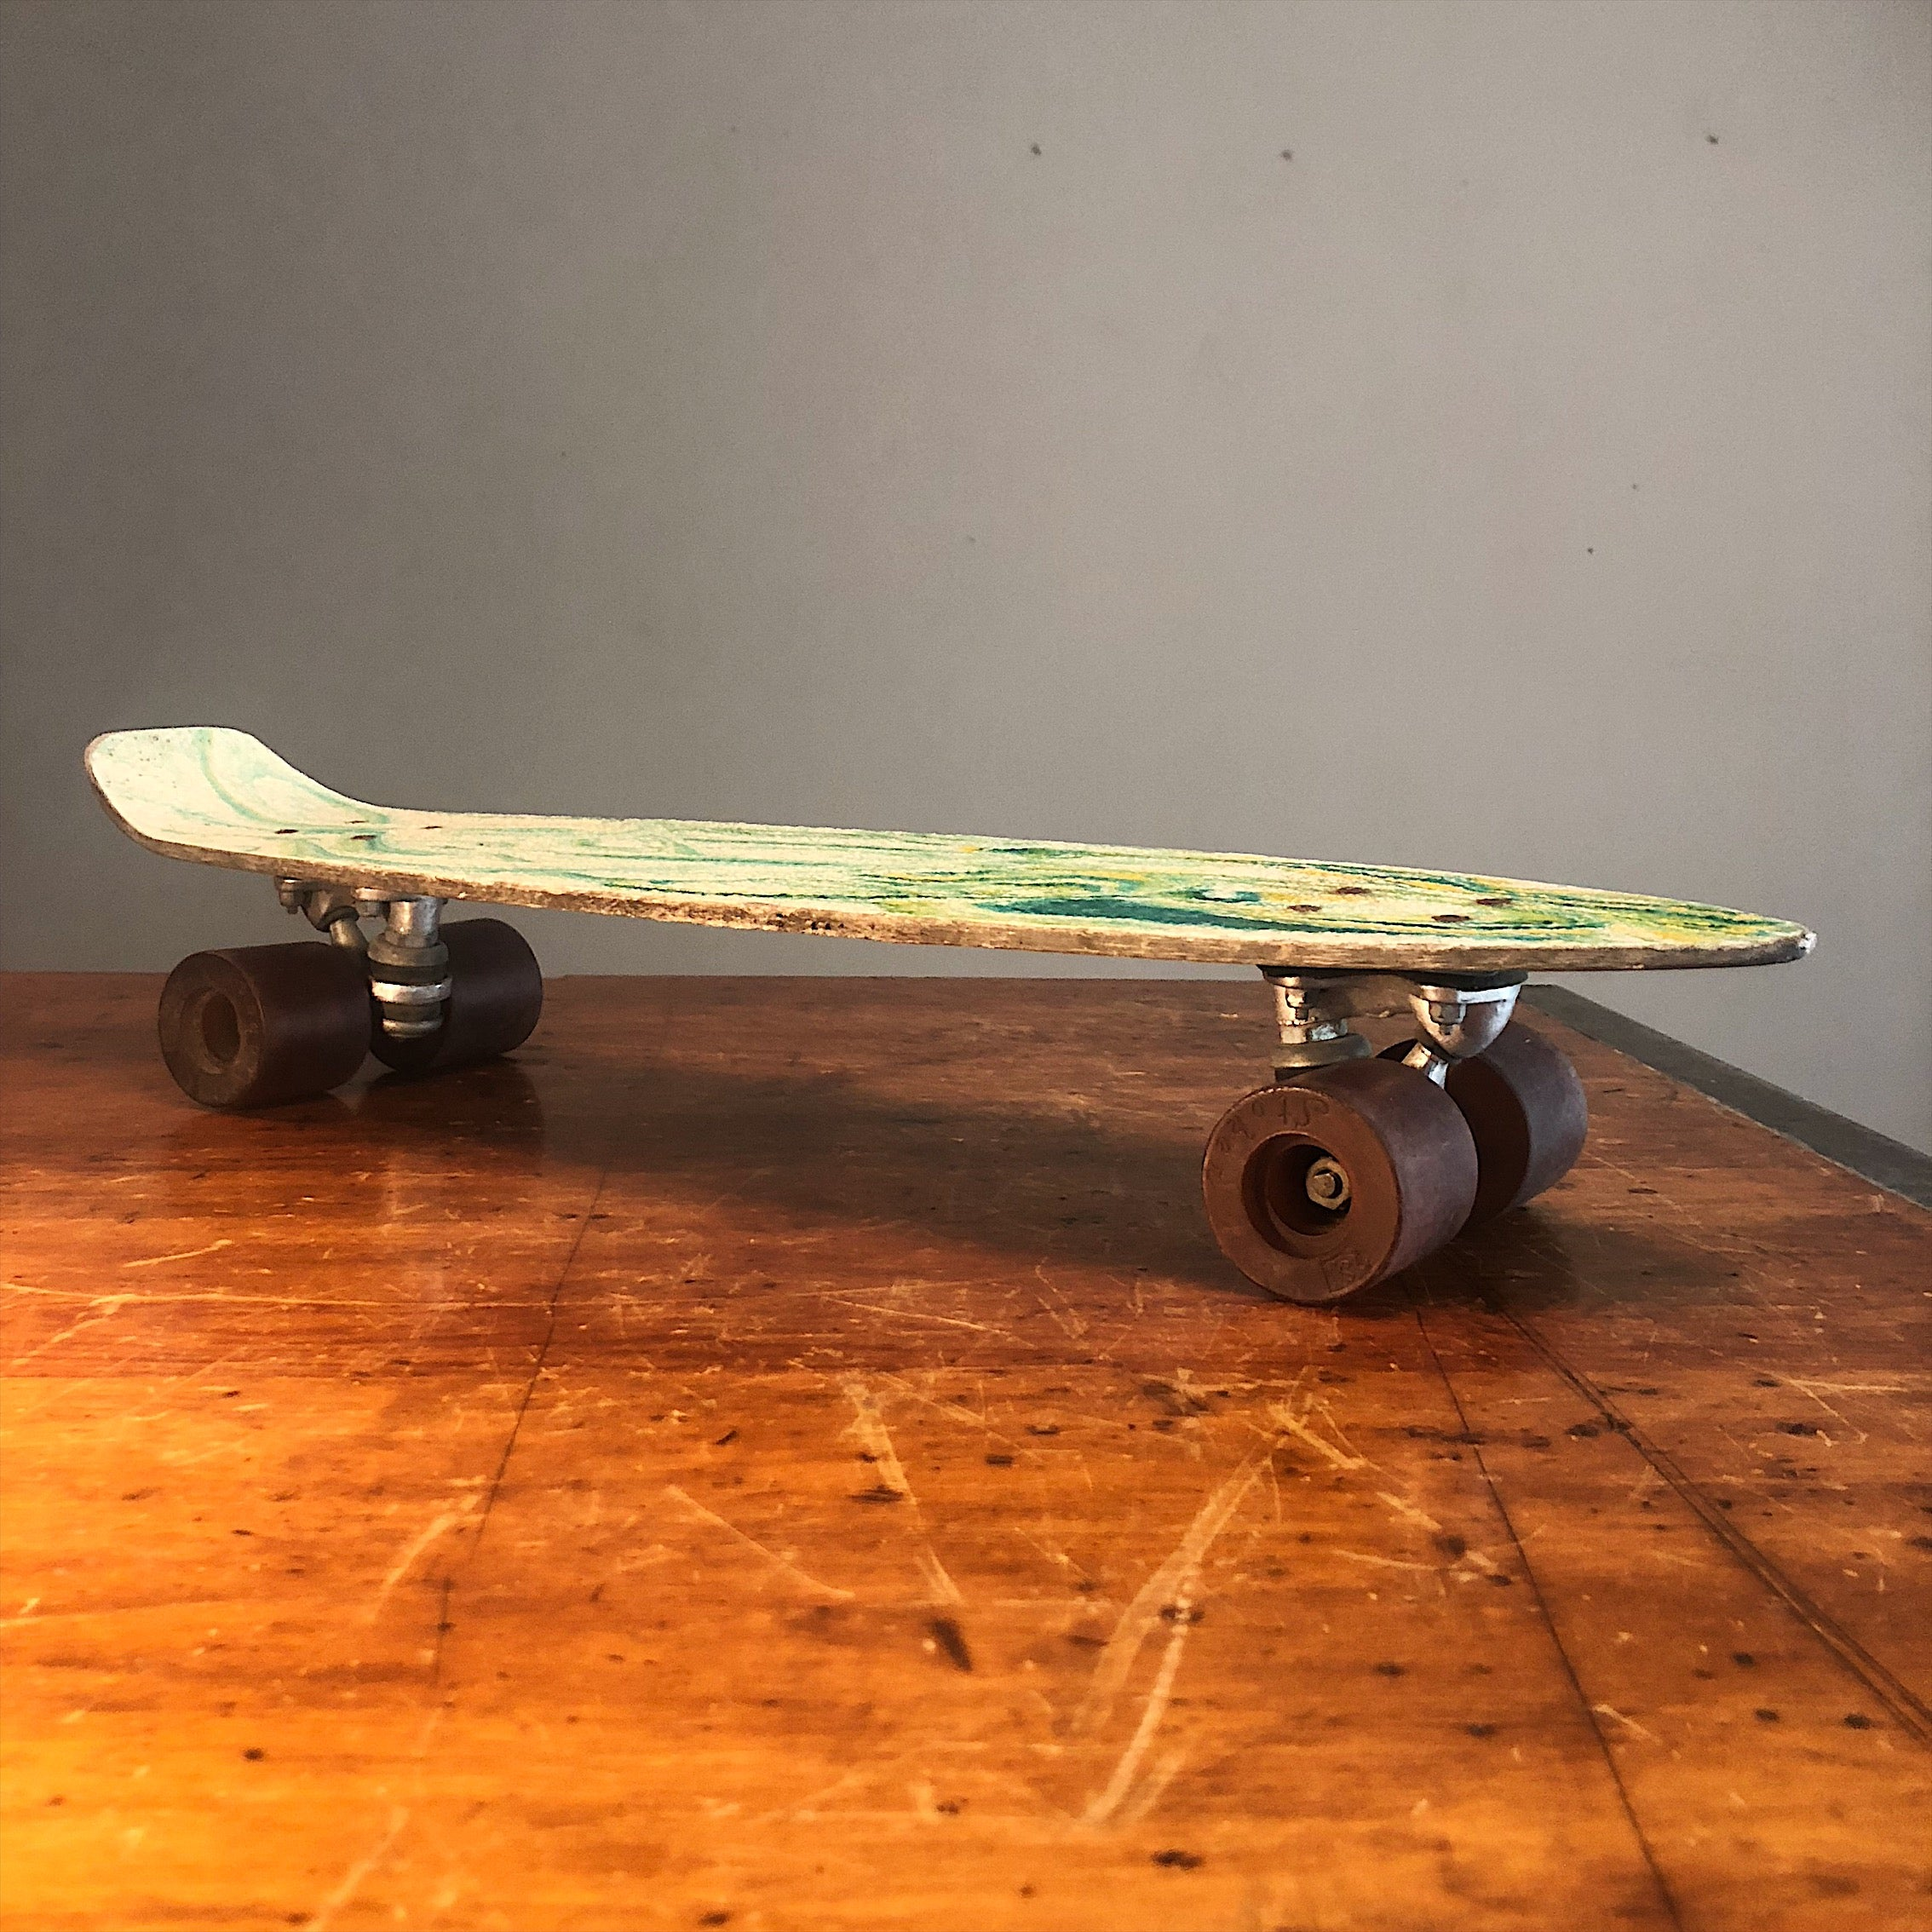 Vintage NONA Skateboard with Psychedelic Fiberglass Deck